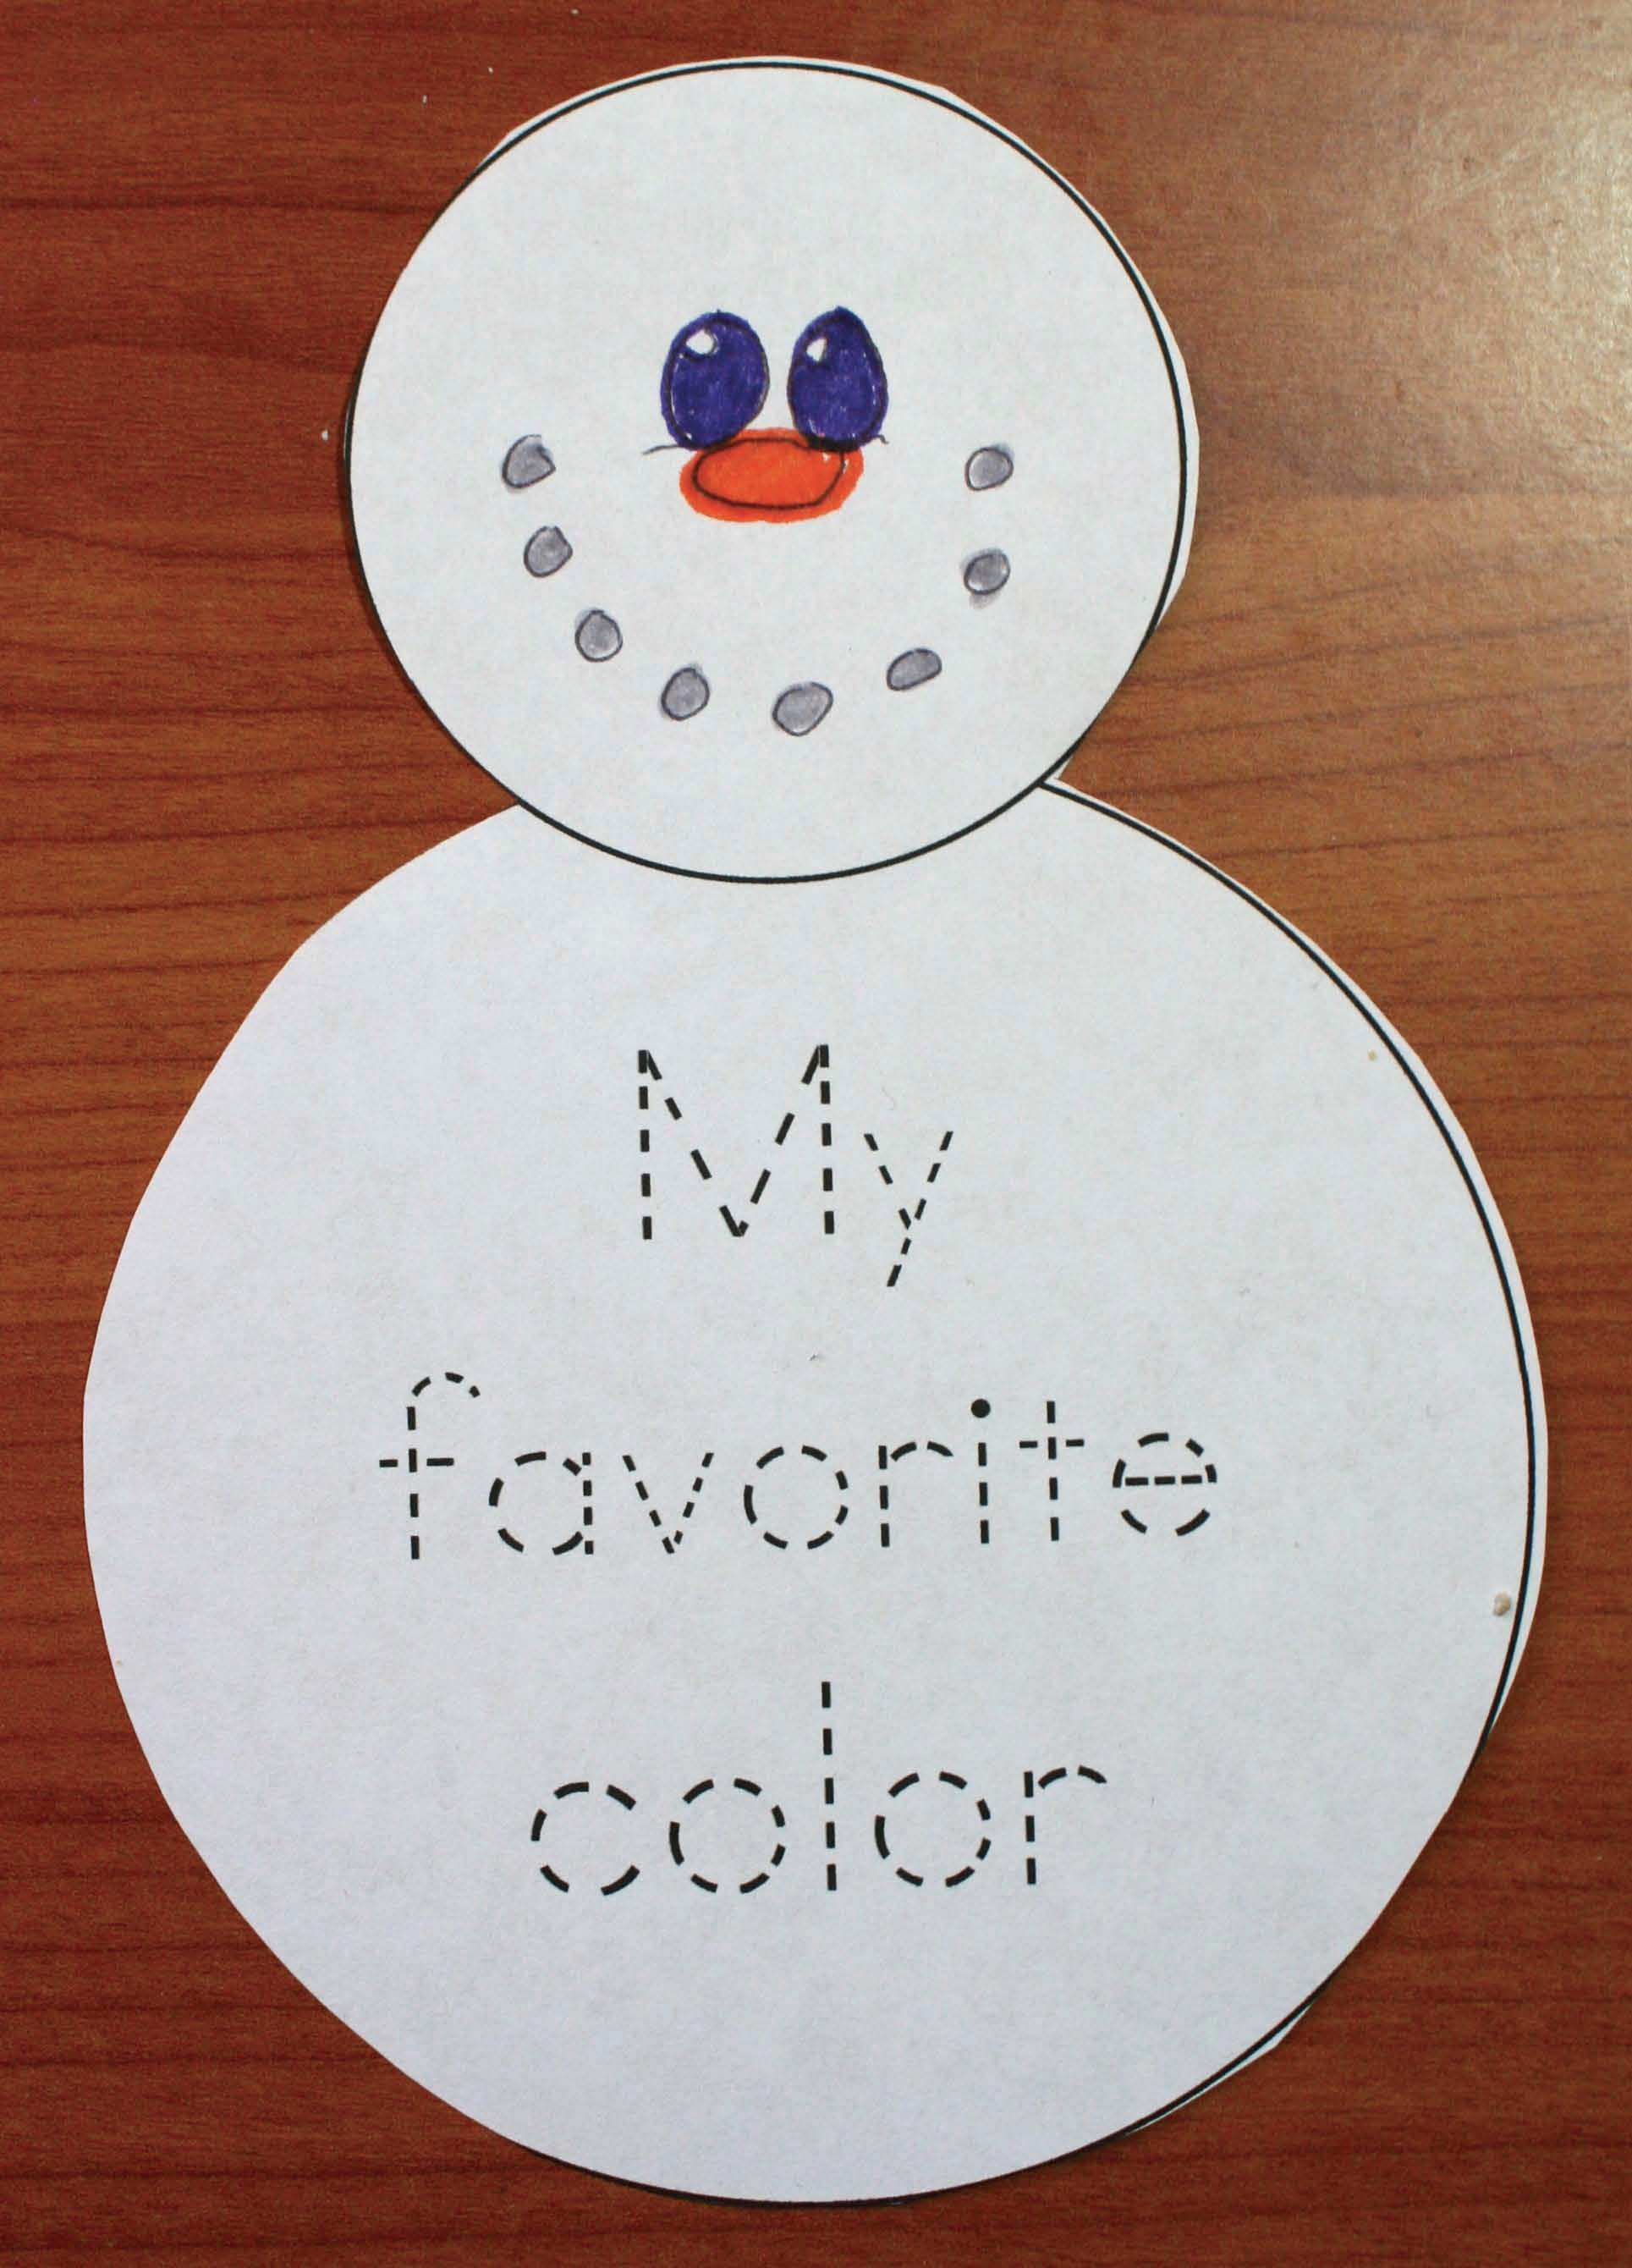 snowman matching game, snowman activities, snowmen, snowman games, happy new year bookmarks, free 2014 bookmarks, free happy new year posters, free happy new year cards, happy new year 2014 activities, happy new year activities, new year activities, new year crafts, new year writing prompts,color word activities, color words, snowman activities